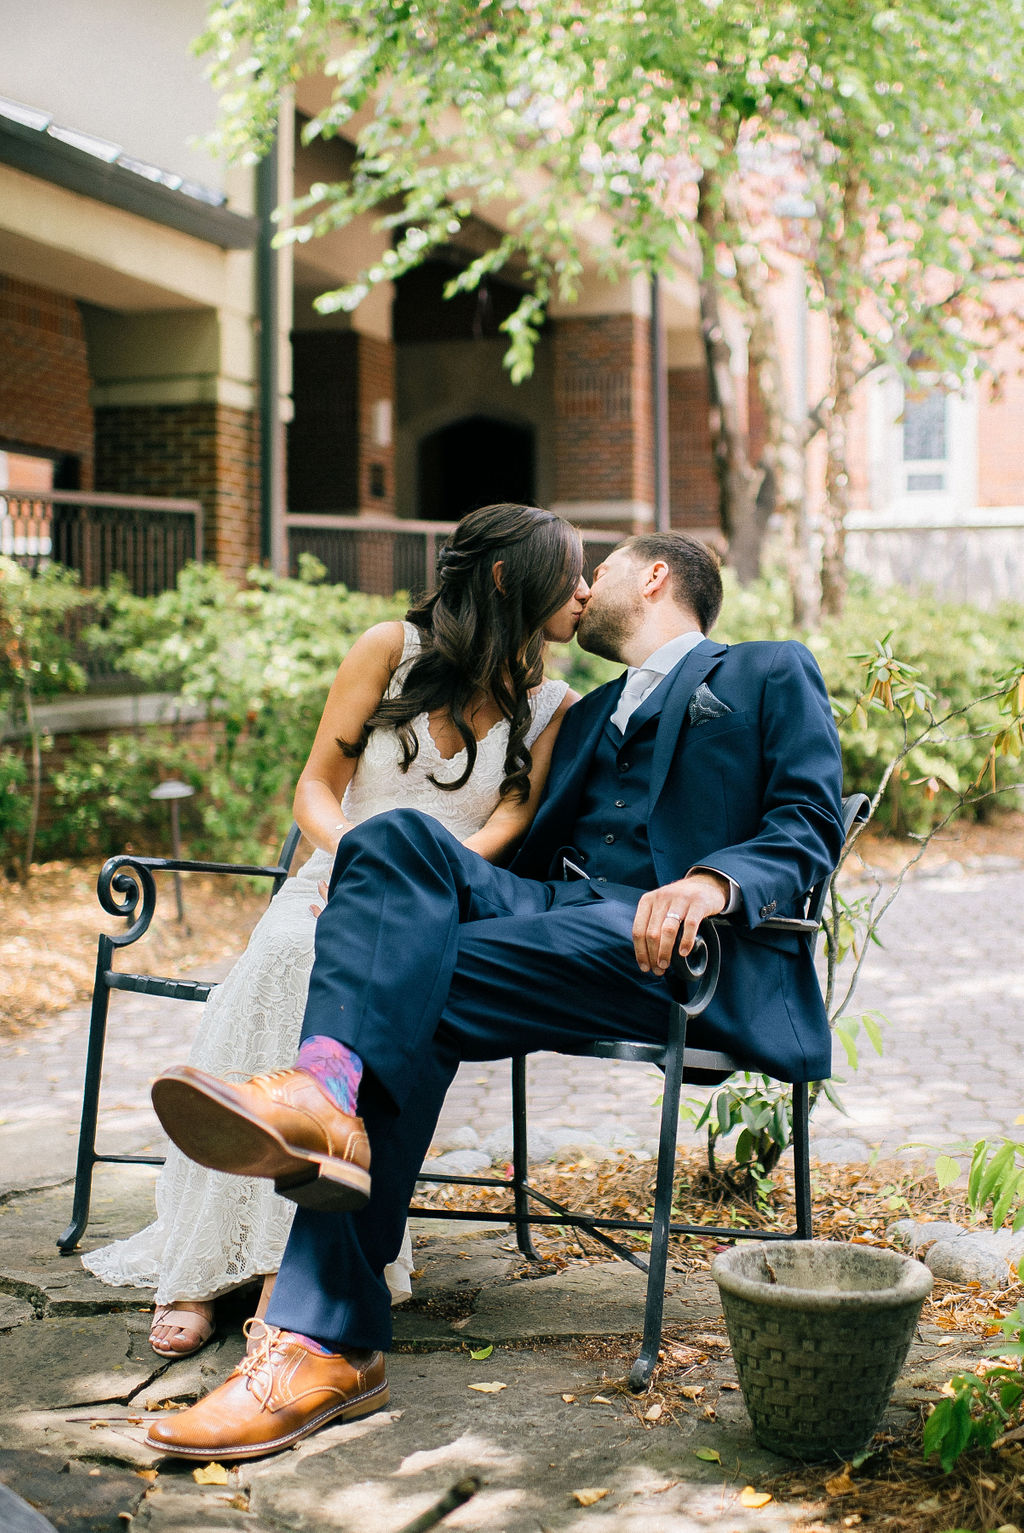 Wedding first look photo ideas for Intimate Nashville Wedding